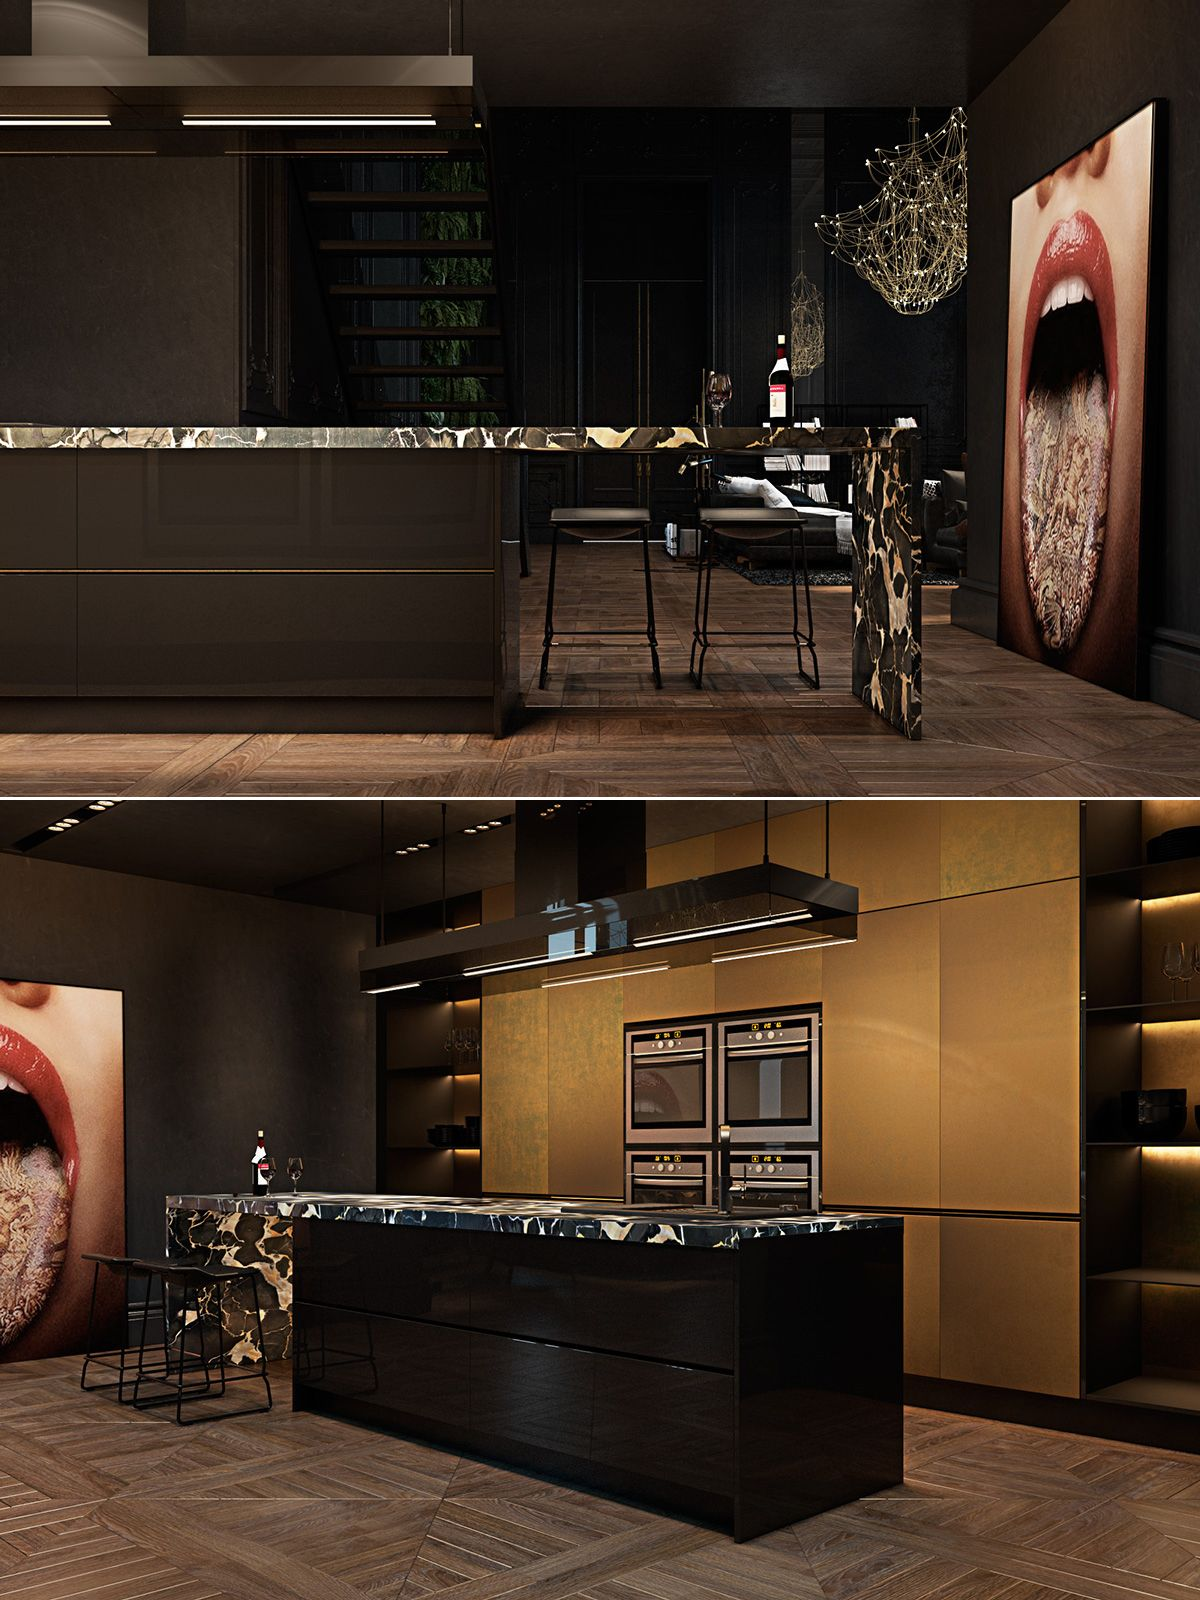 Home designing photo also kitchens pinterest awesome things rh